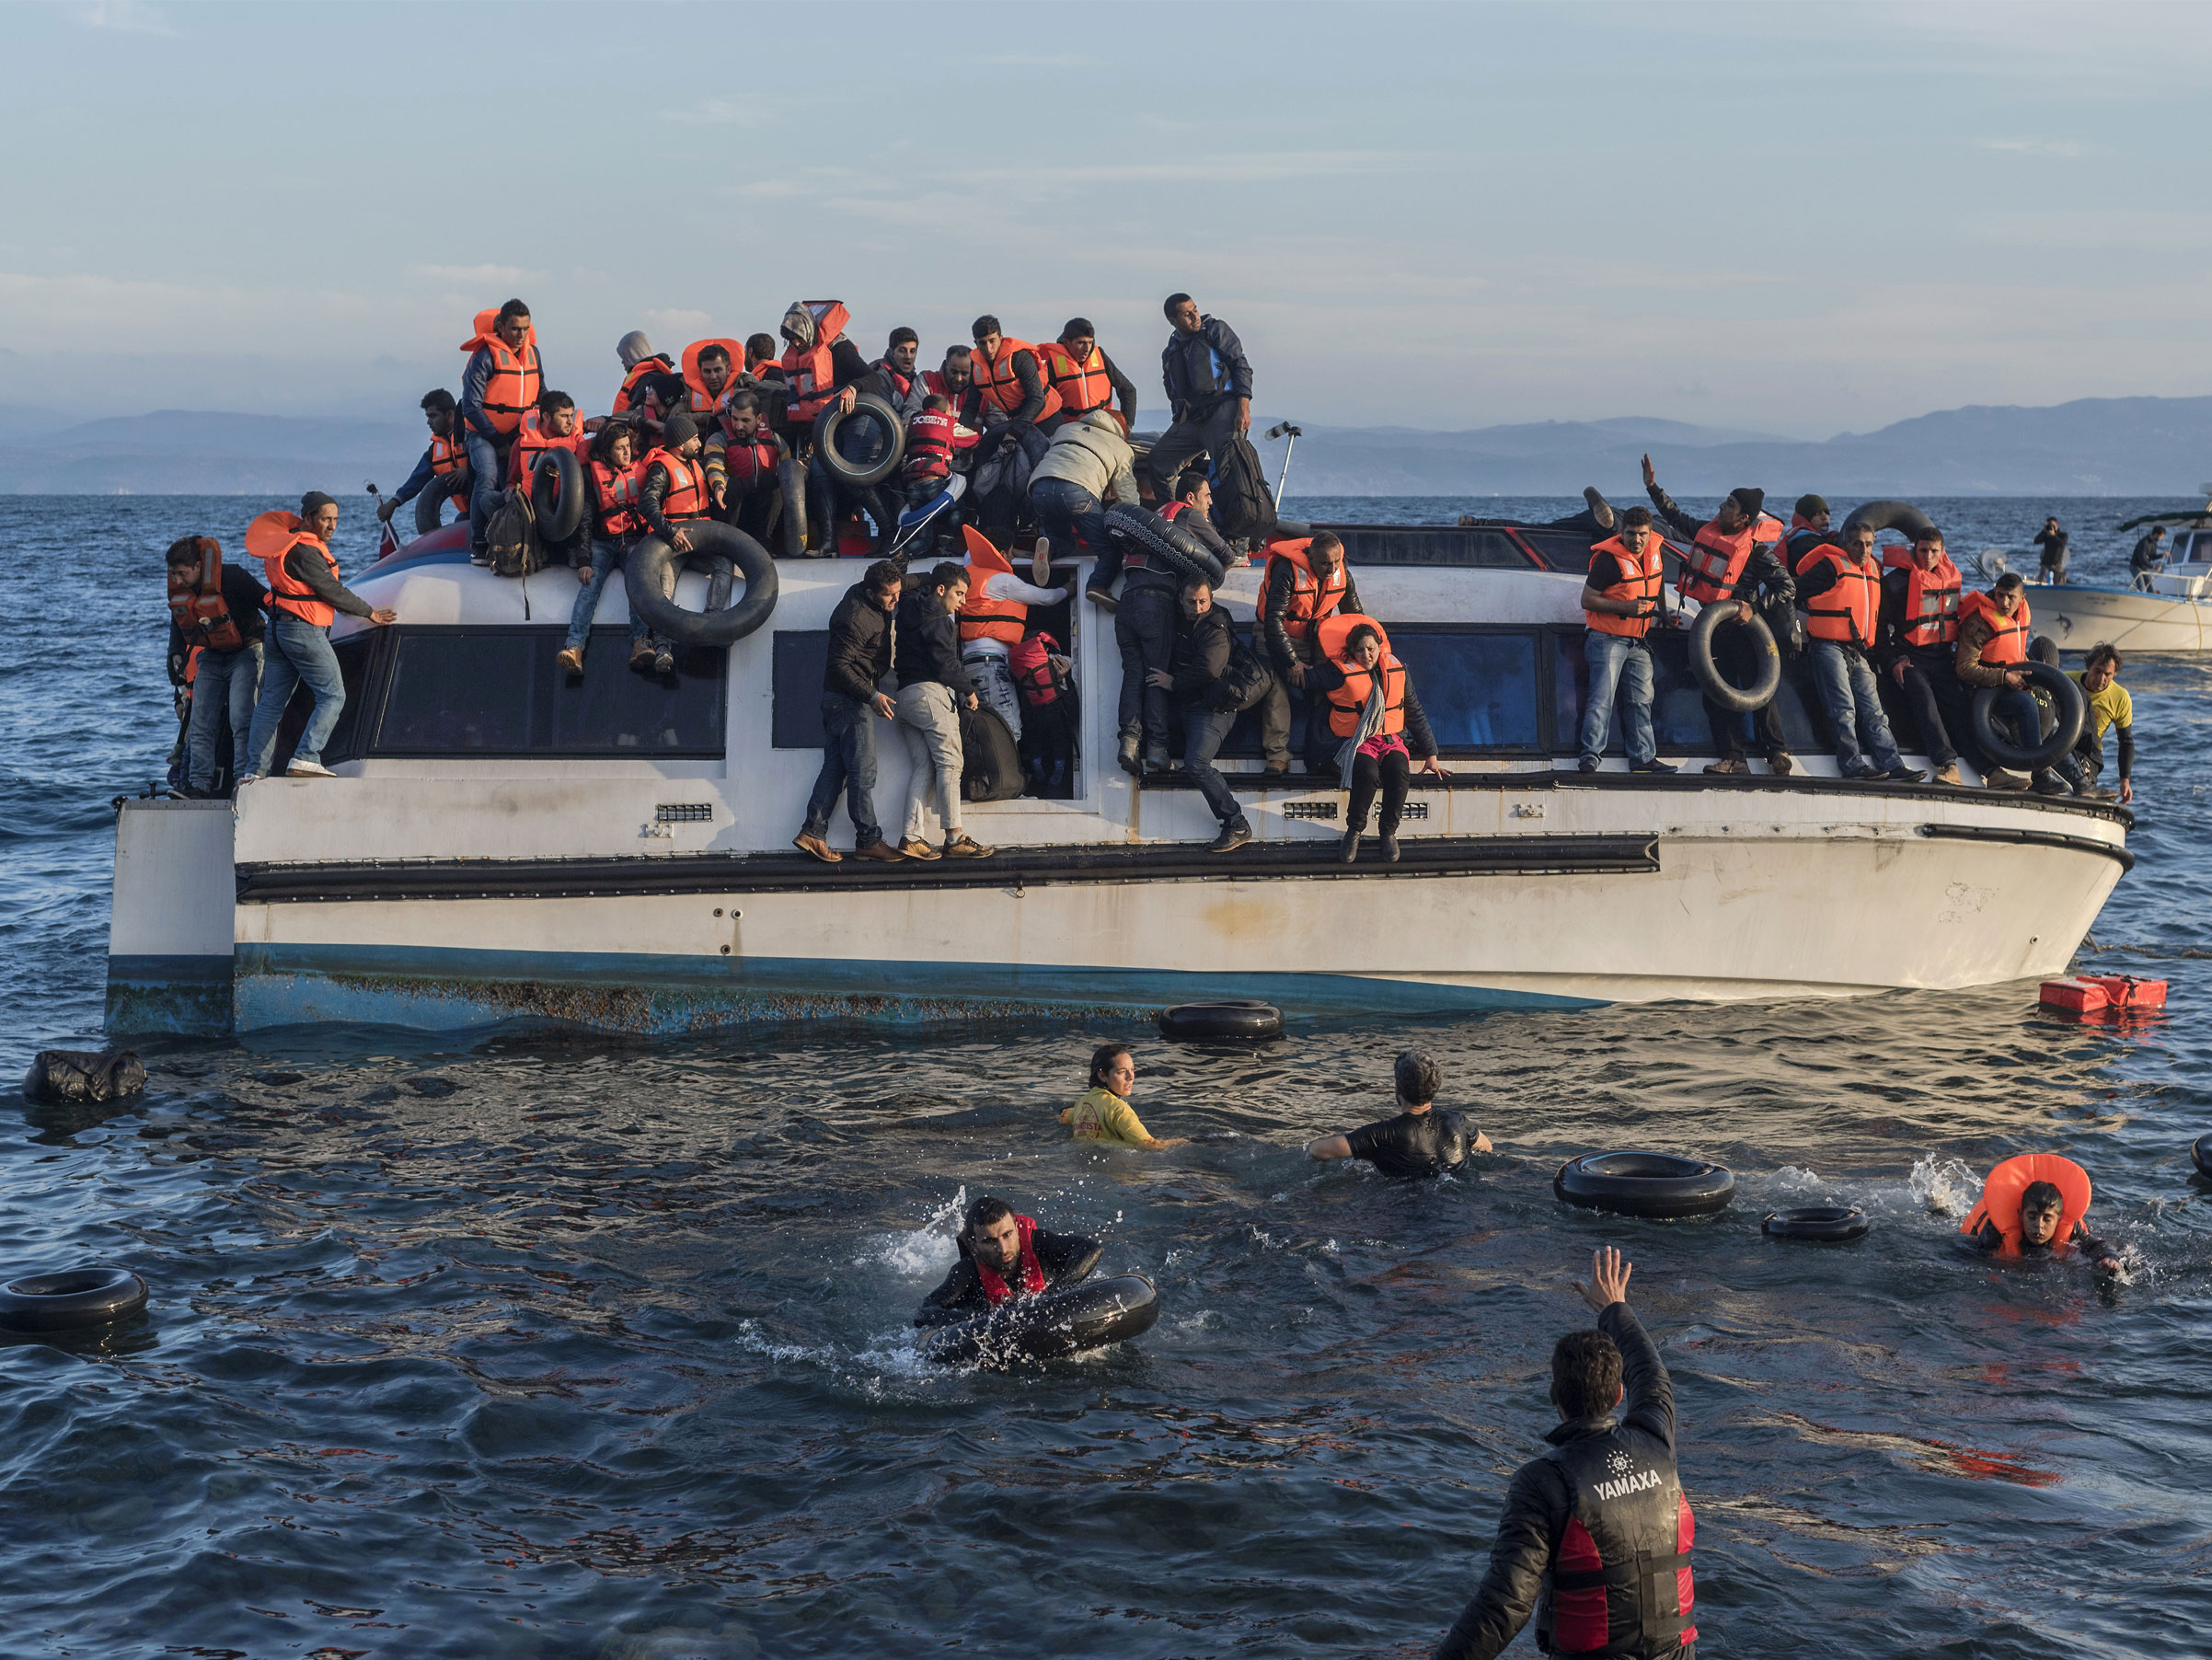 The Refugee Crisis: Crossing, Cutting and Burning the Mediterranean Seametery